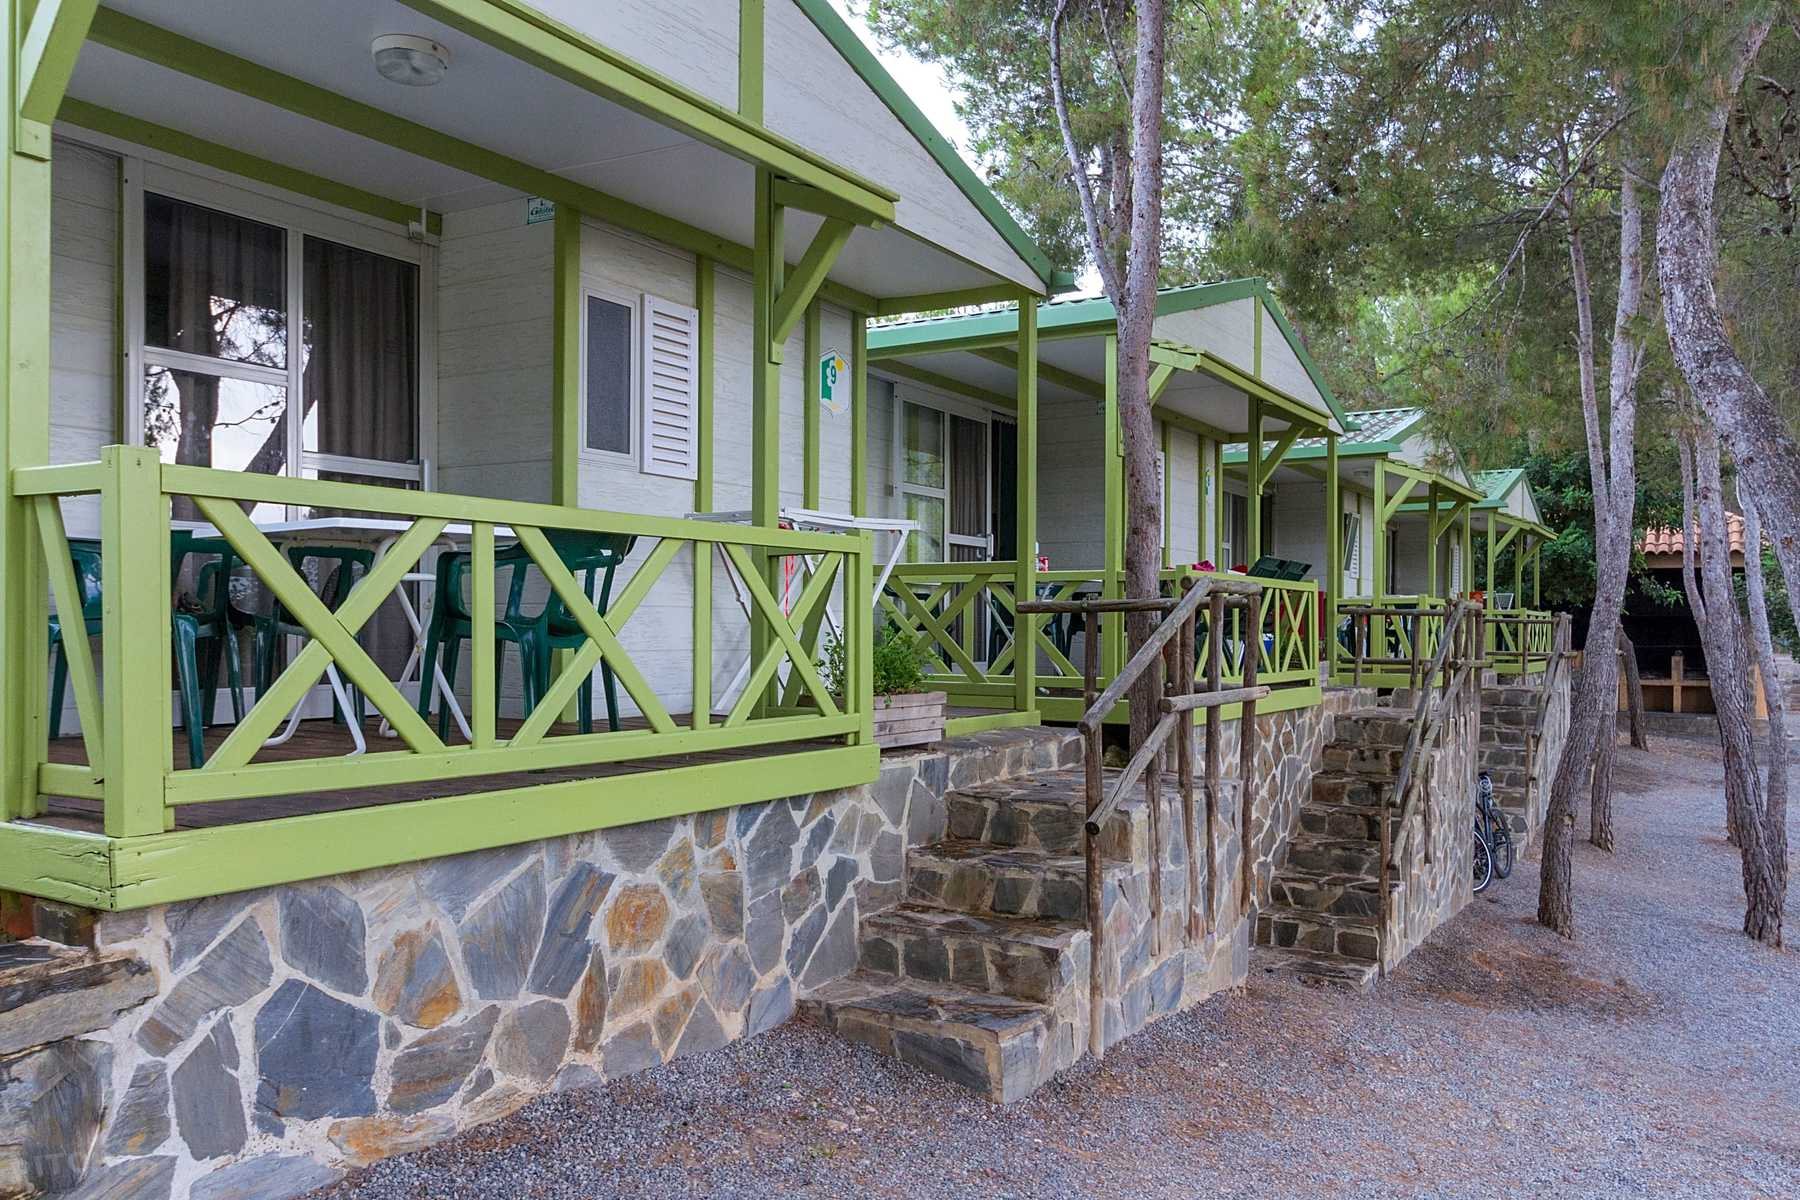 Camping Altomira Navajas Updated 2021 Prices Pitchup